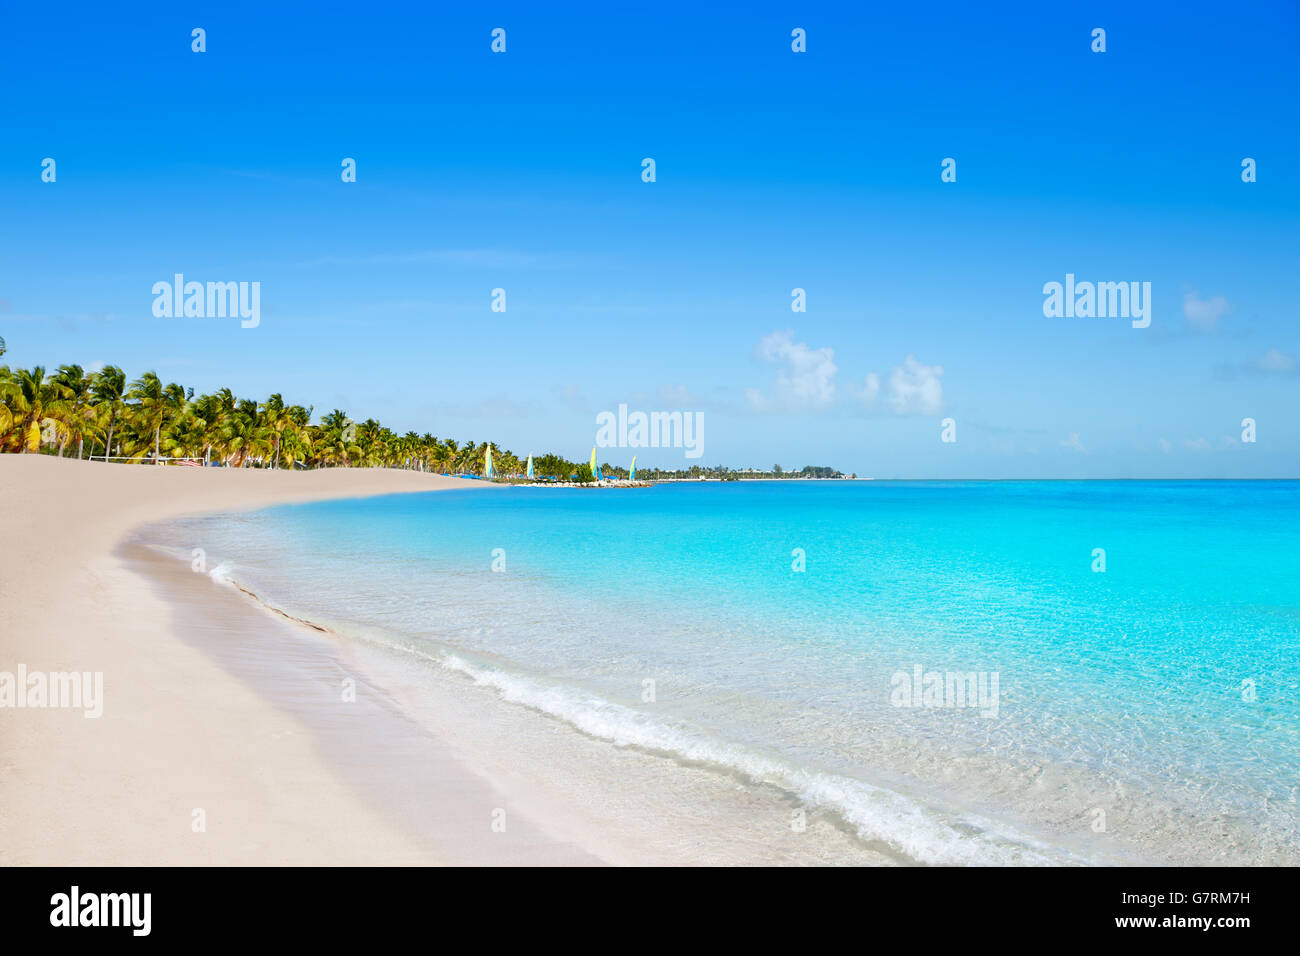 Key west florida Smathers beach palm trees in USA - Stock Image